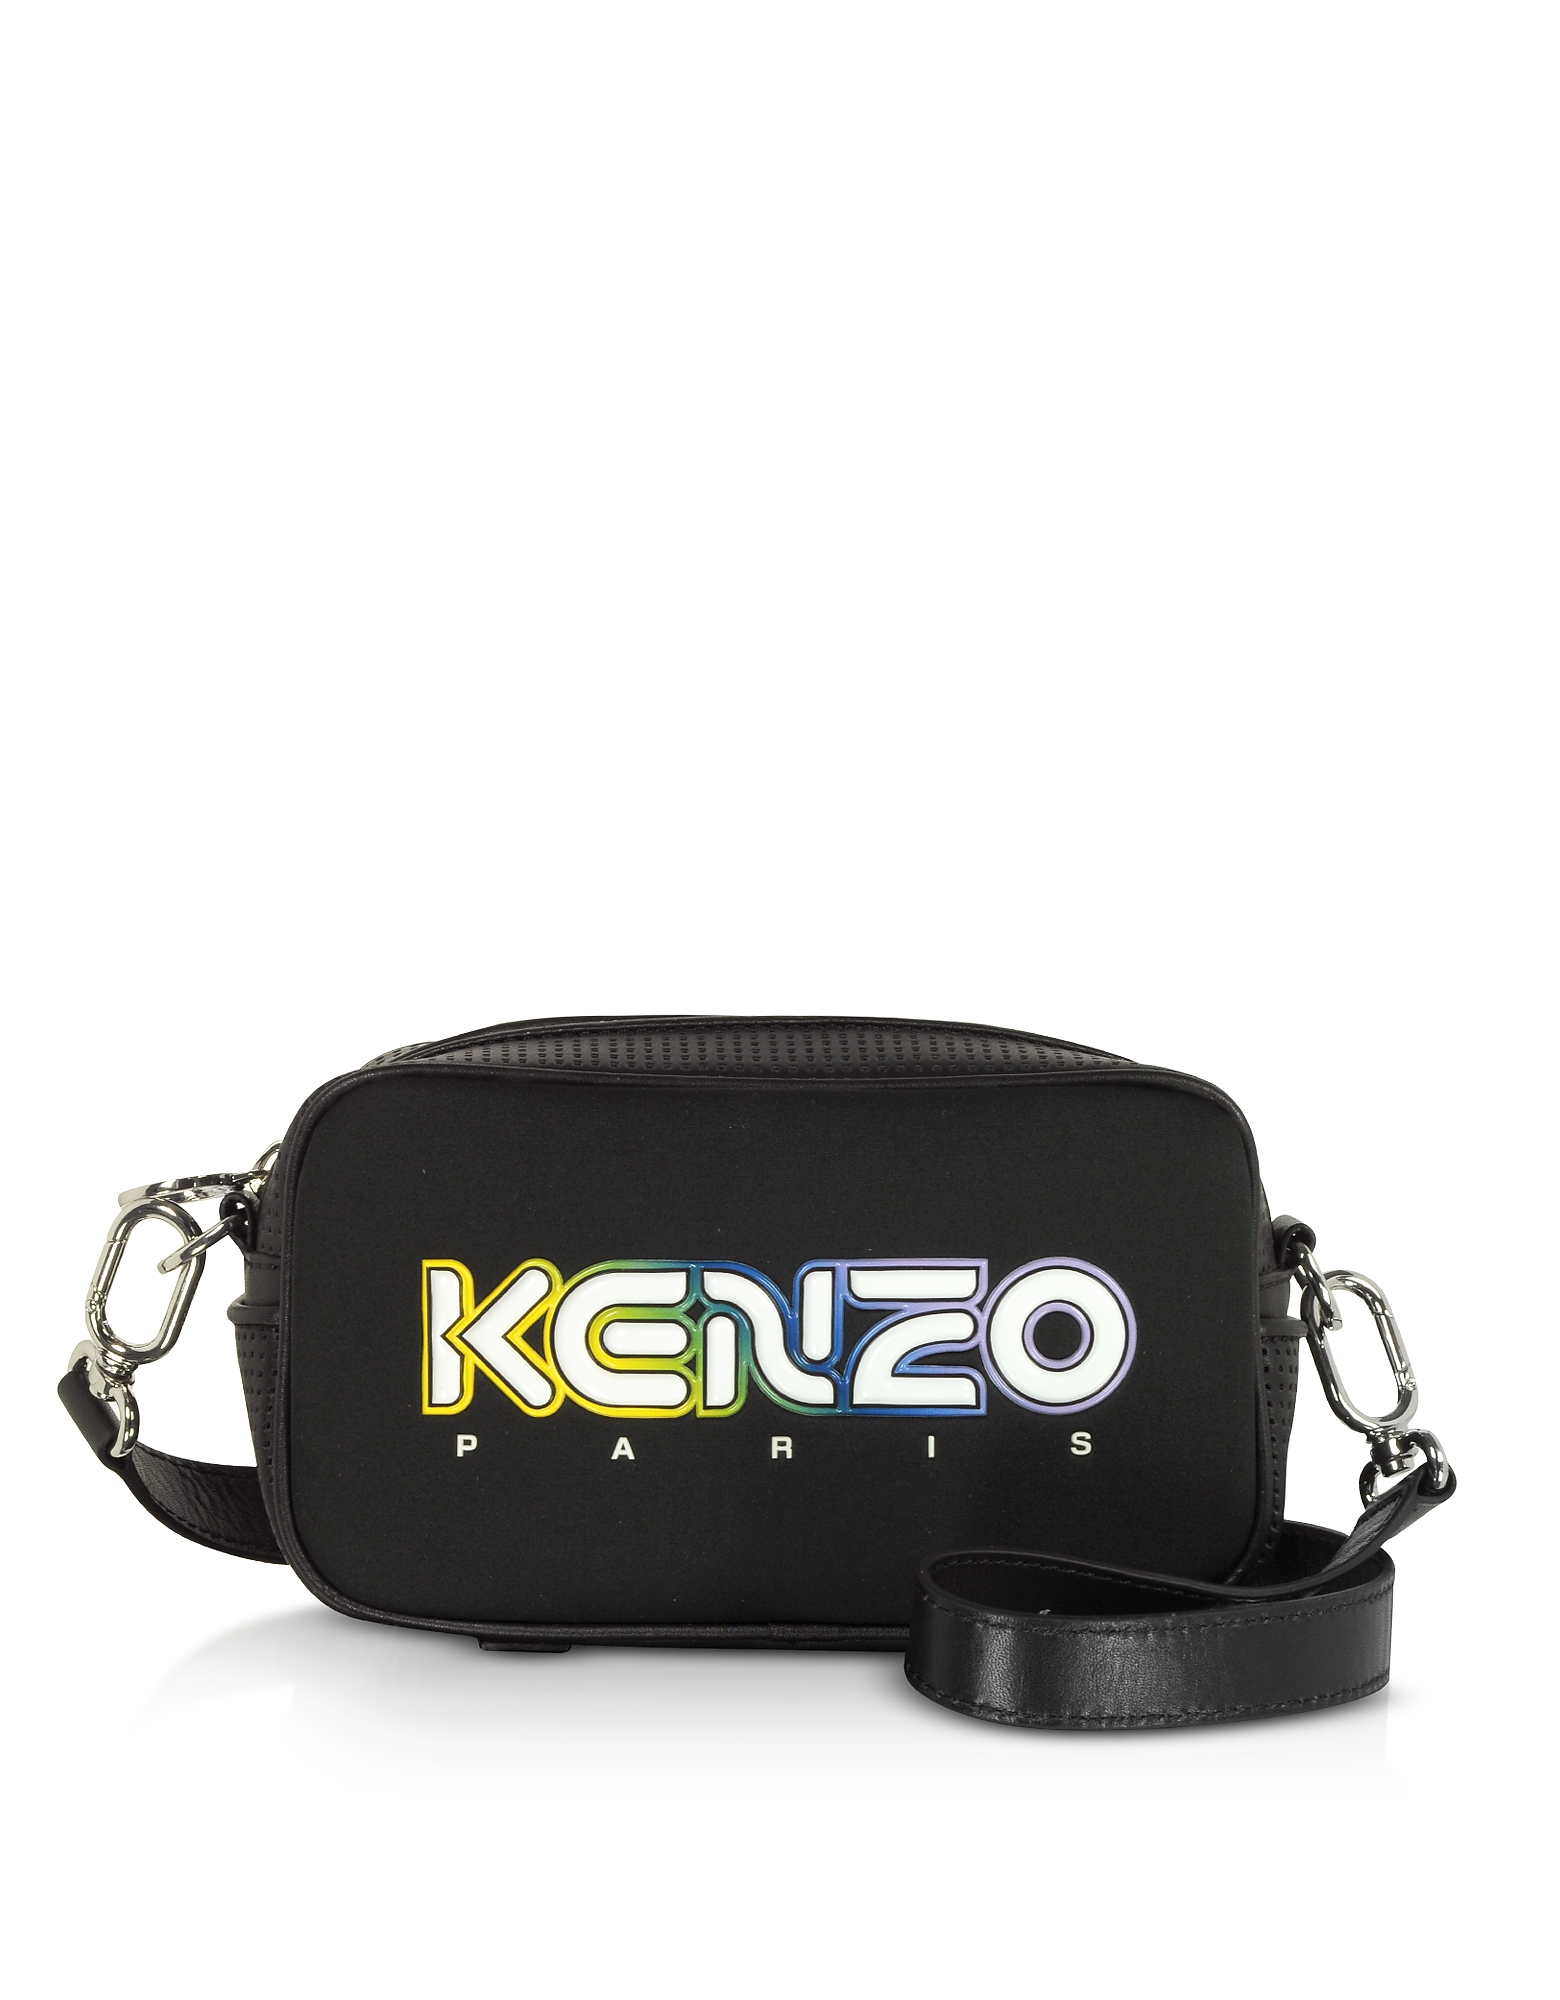 Kenzo Designer Handbags, Black Neoprene Kombo Crossbody Bag